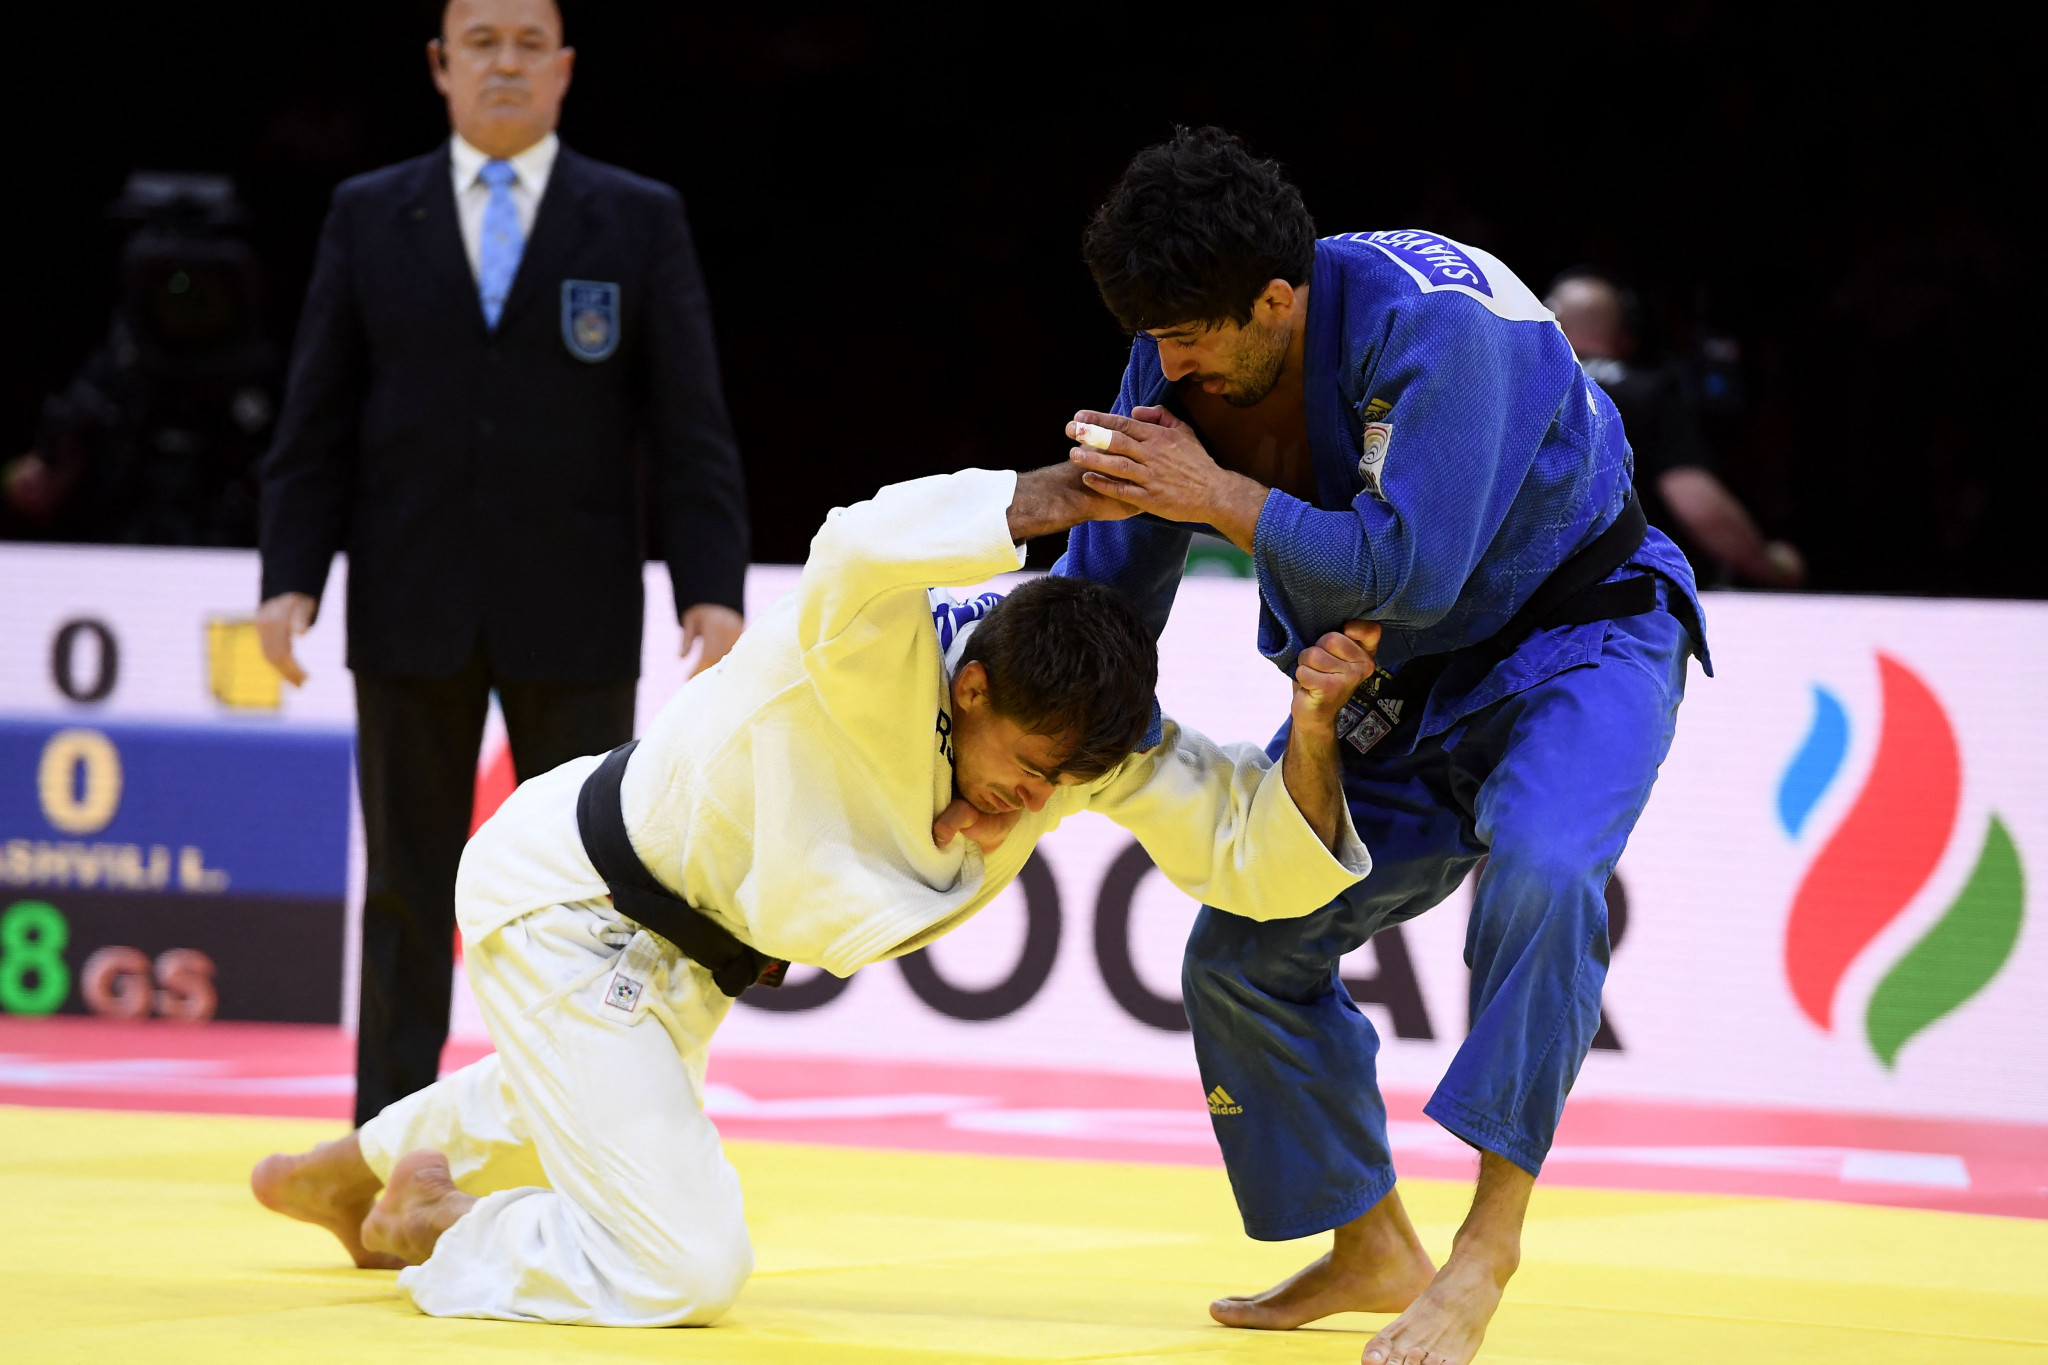 insidethegames is reporting LIVE on the IJF World Championships